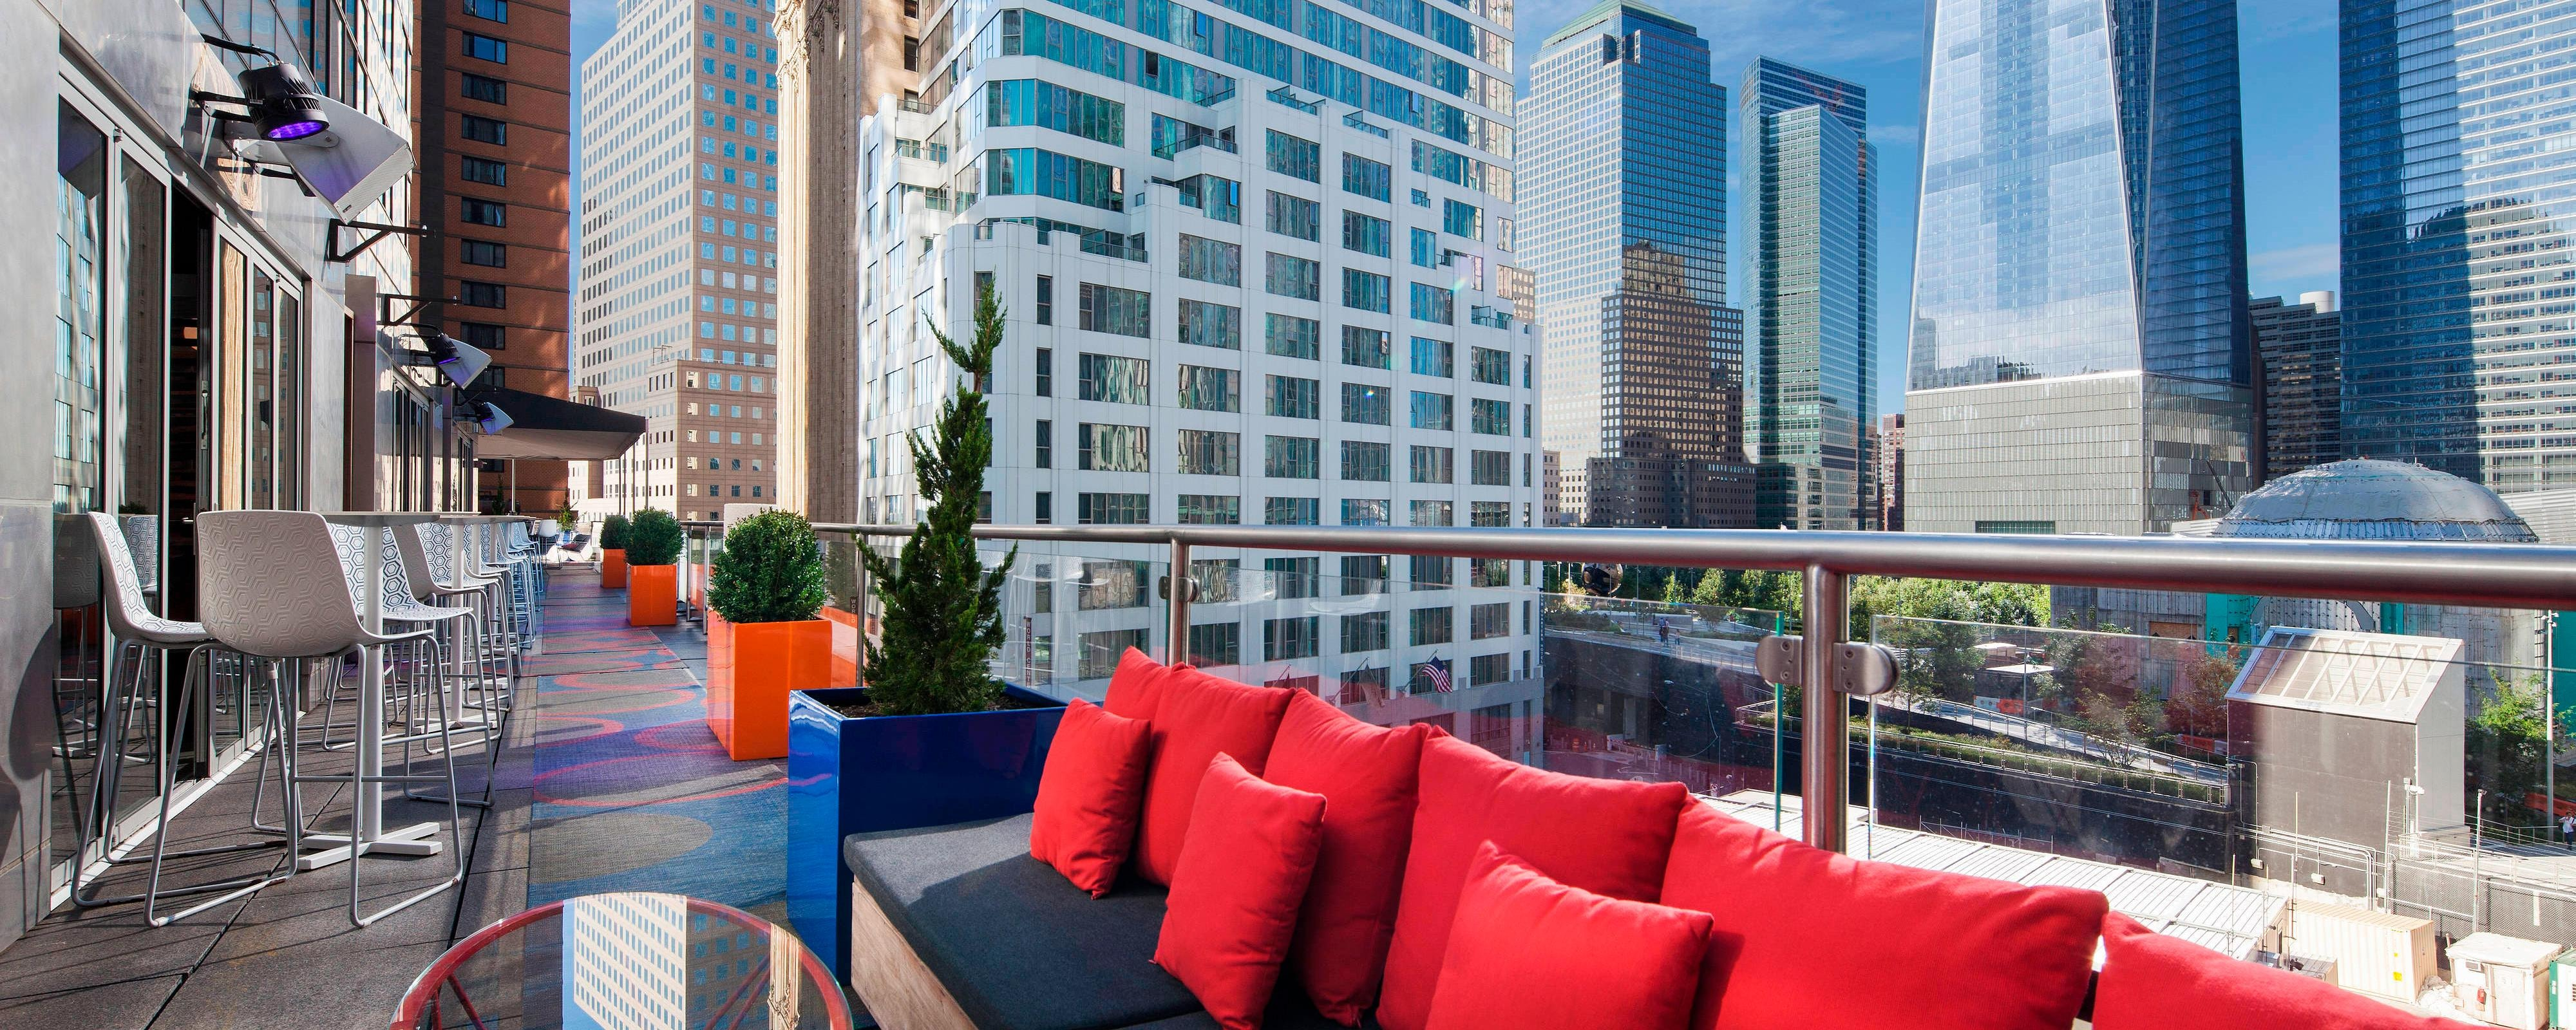 Terrace OverlooKing ManhattanSkyline View